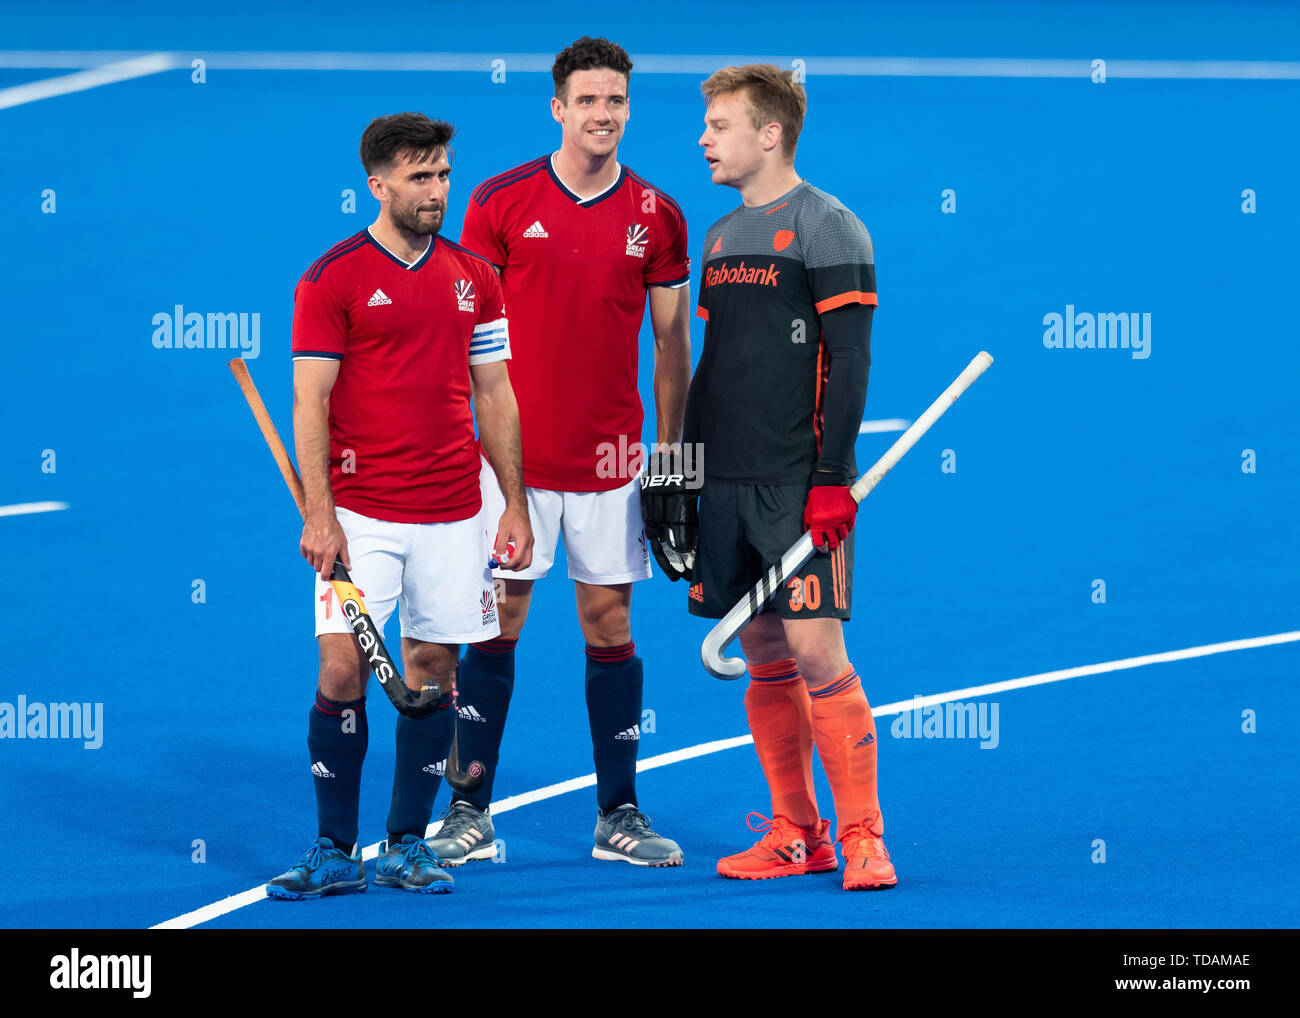 LONDON, UNITED KINGDOM. 14th Jun, 2019.   during FIH Pro League match: Great Britain vs Netherlands at Lea Valley Hockey and Tennis Centre on Friday, June 14, 2019 in LONDON ENGLAND. Credit: Taka G Wu/Alamy Live News Stock Photo